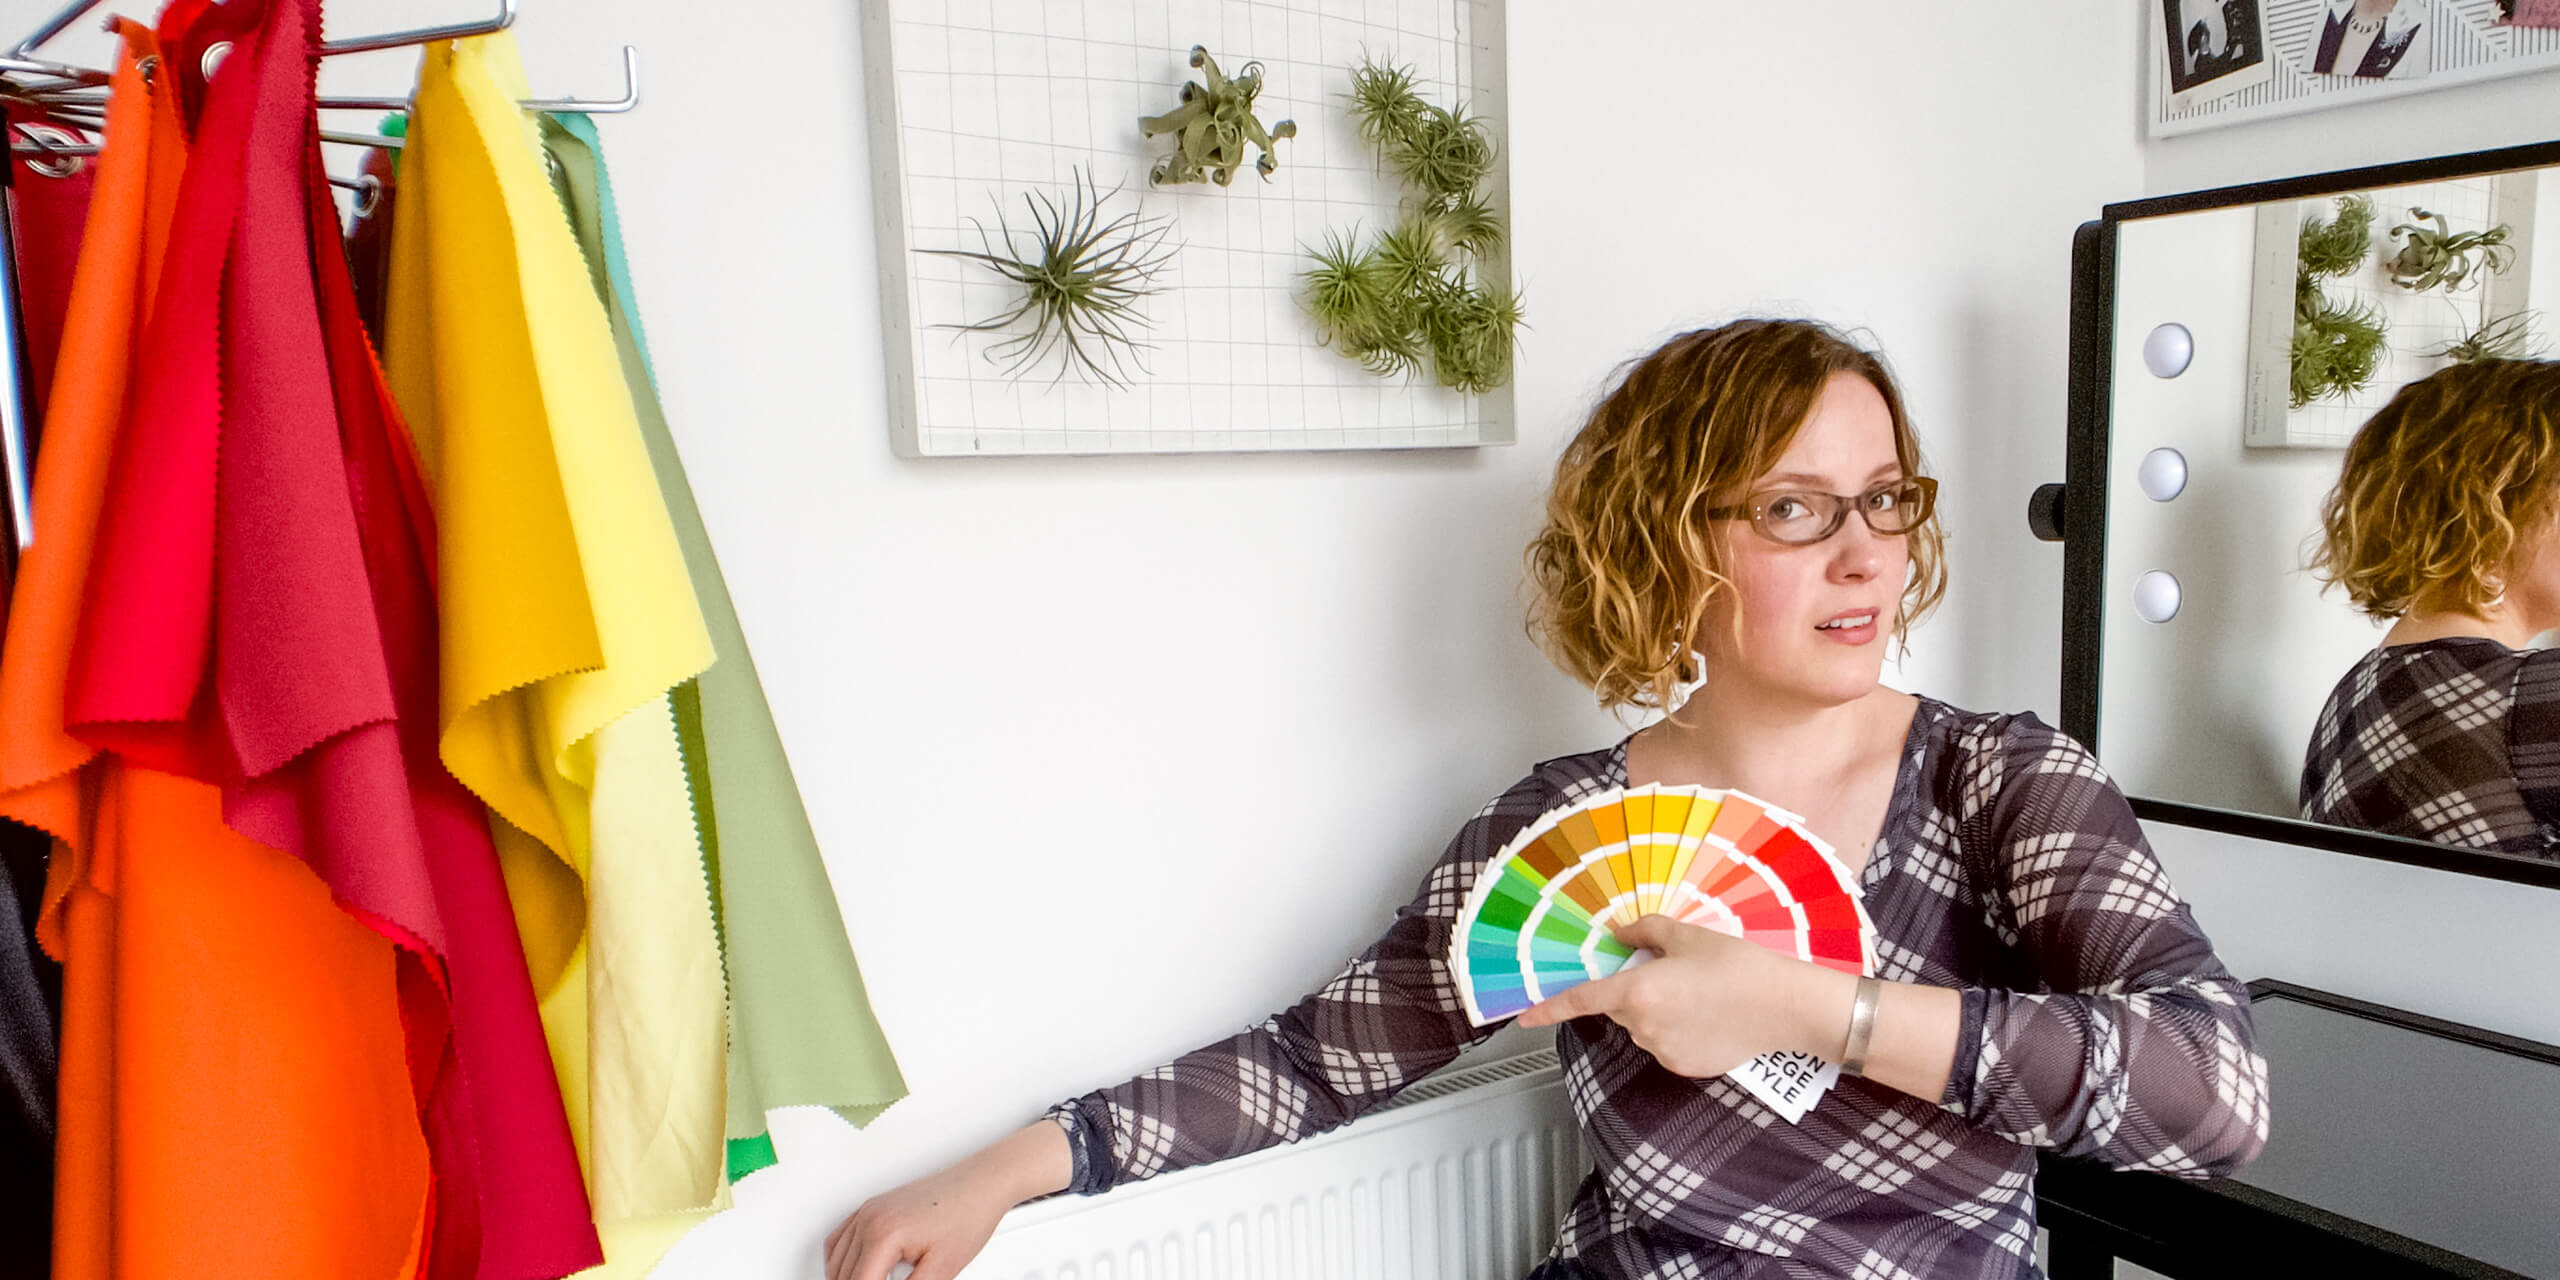 Alexandria Lawrence, Founder of ALSO in PINK. In Her Studio With Colour Analysis Drapes, Holding A Spring Colour Fan.